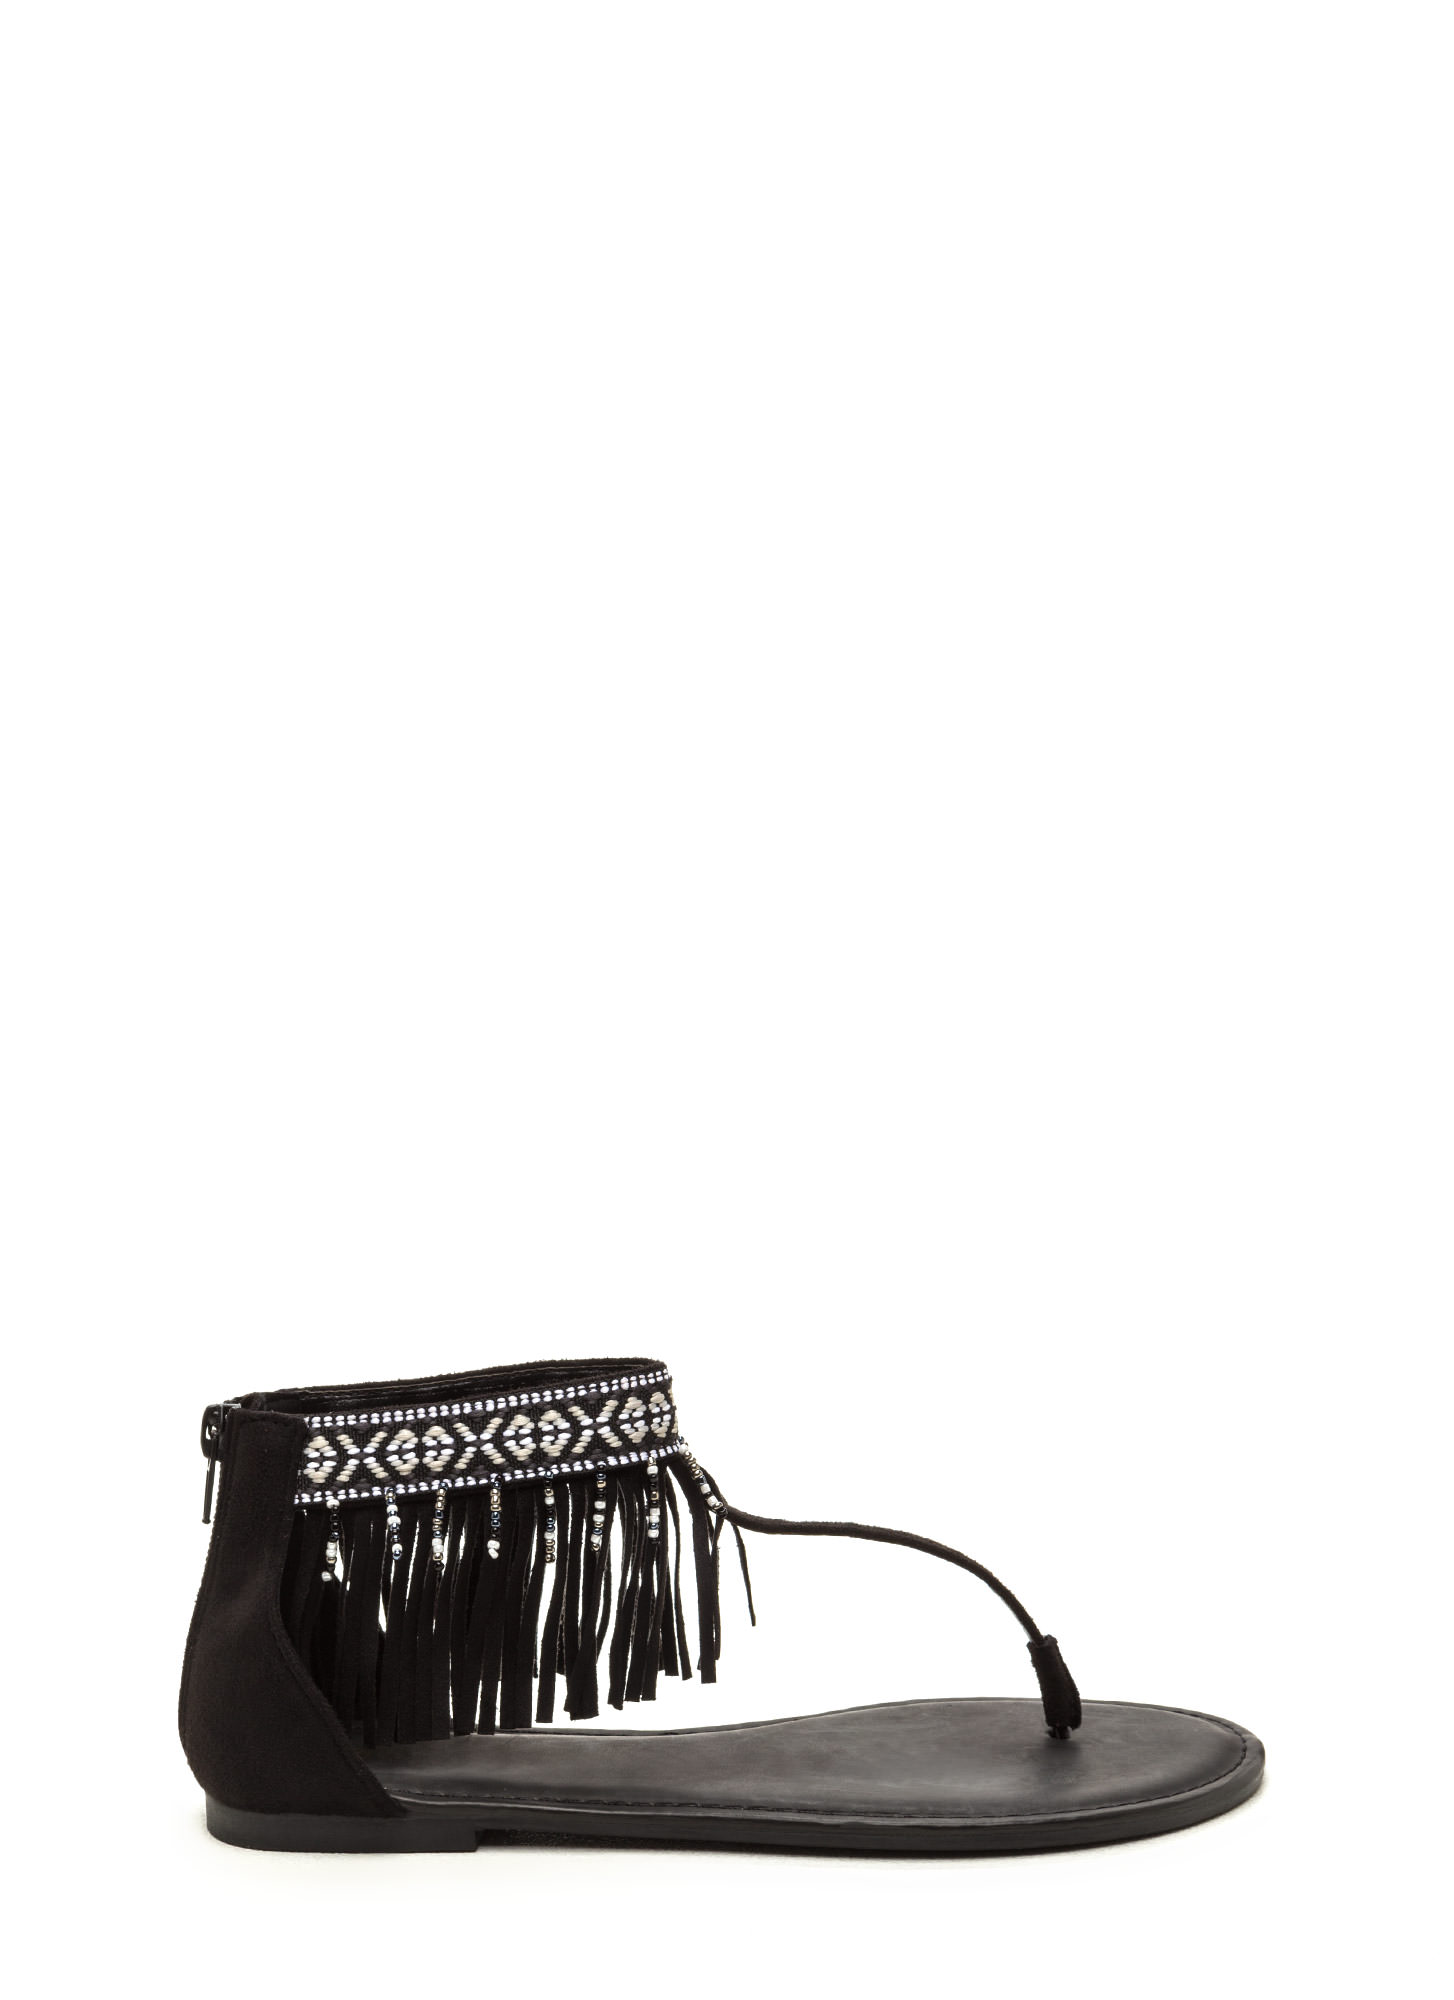 Southwest Explorer Fringed Sandals BLACK